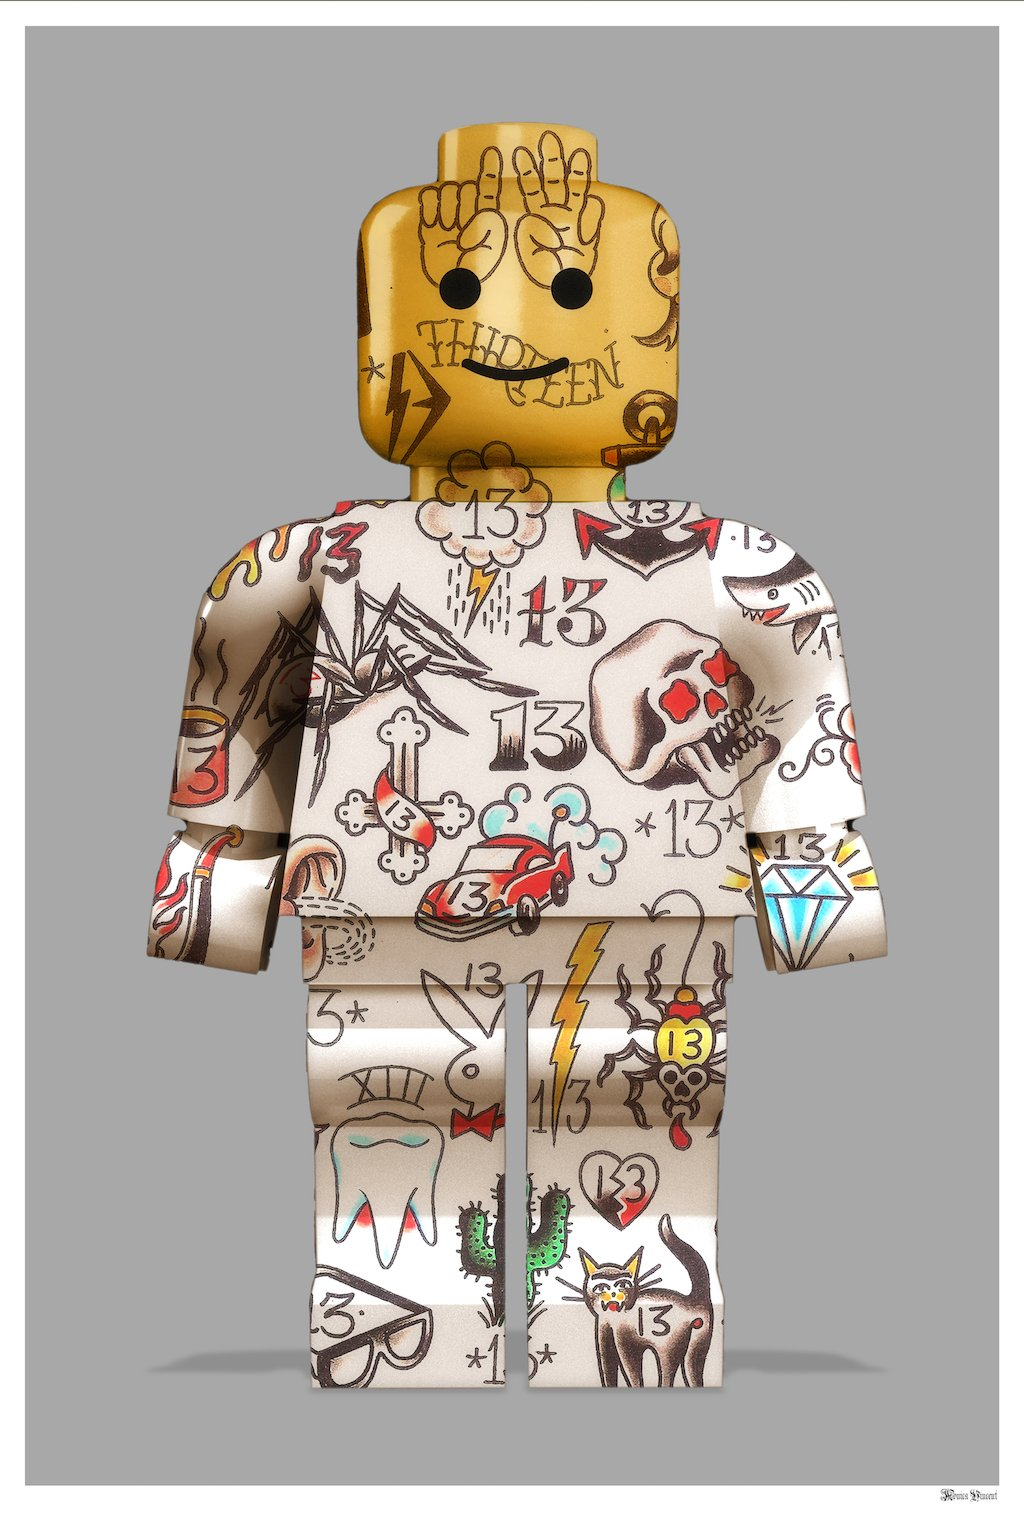 Graffiti Lego Man (Grey Background) - Small - Framed by Monica Vincent